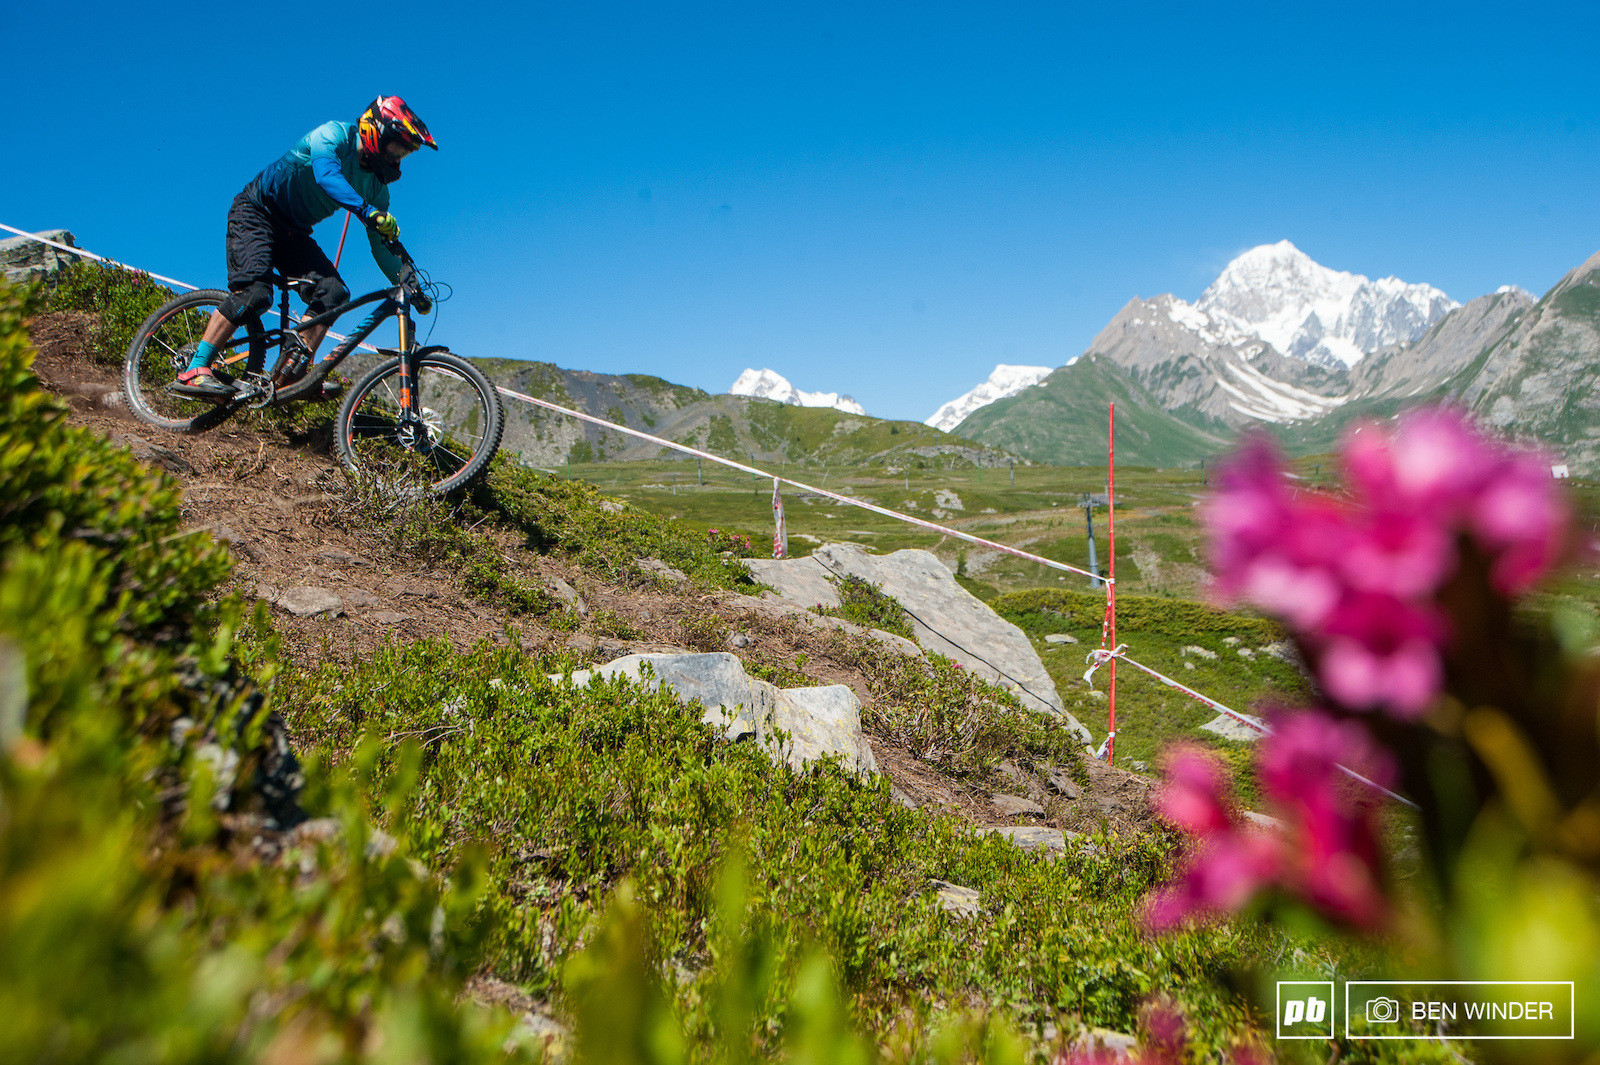 With Mont Blanc overlooking some of the trails this is why these racers go to such lengths to race here.